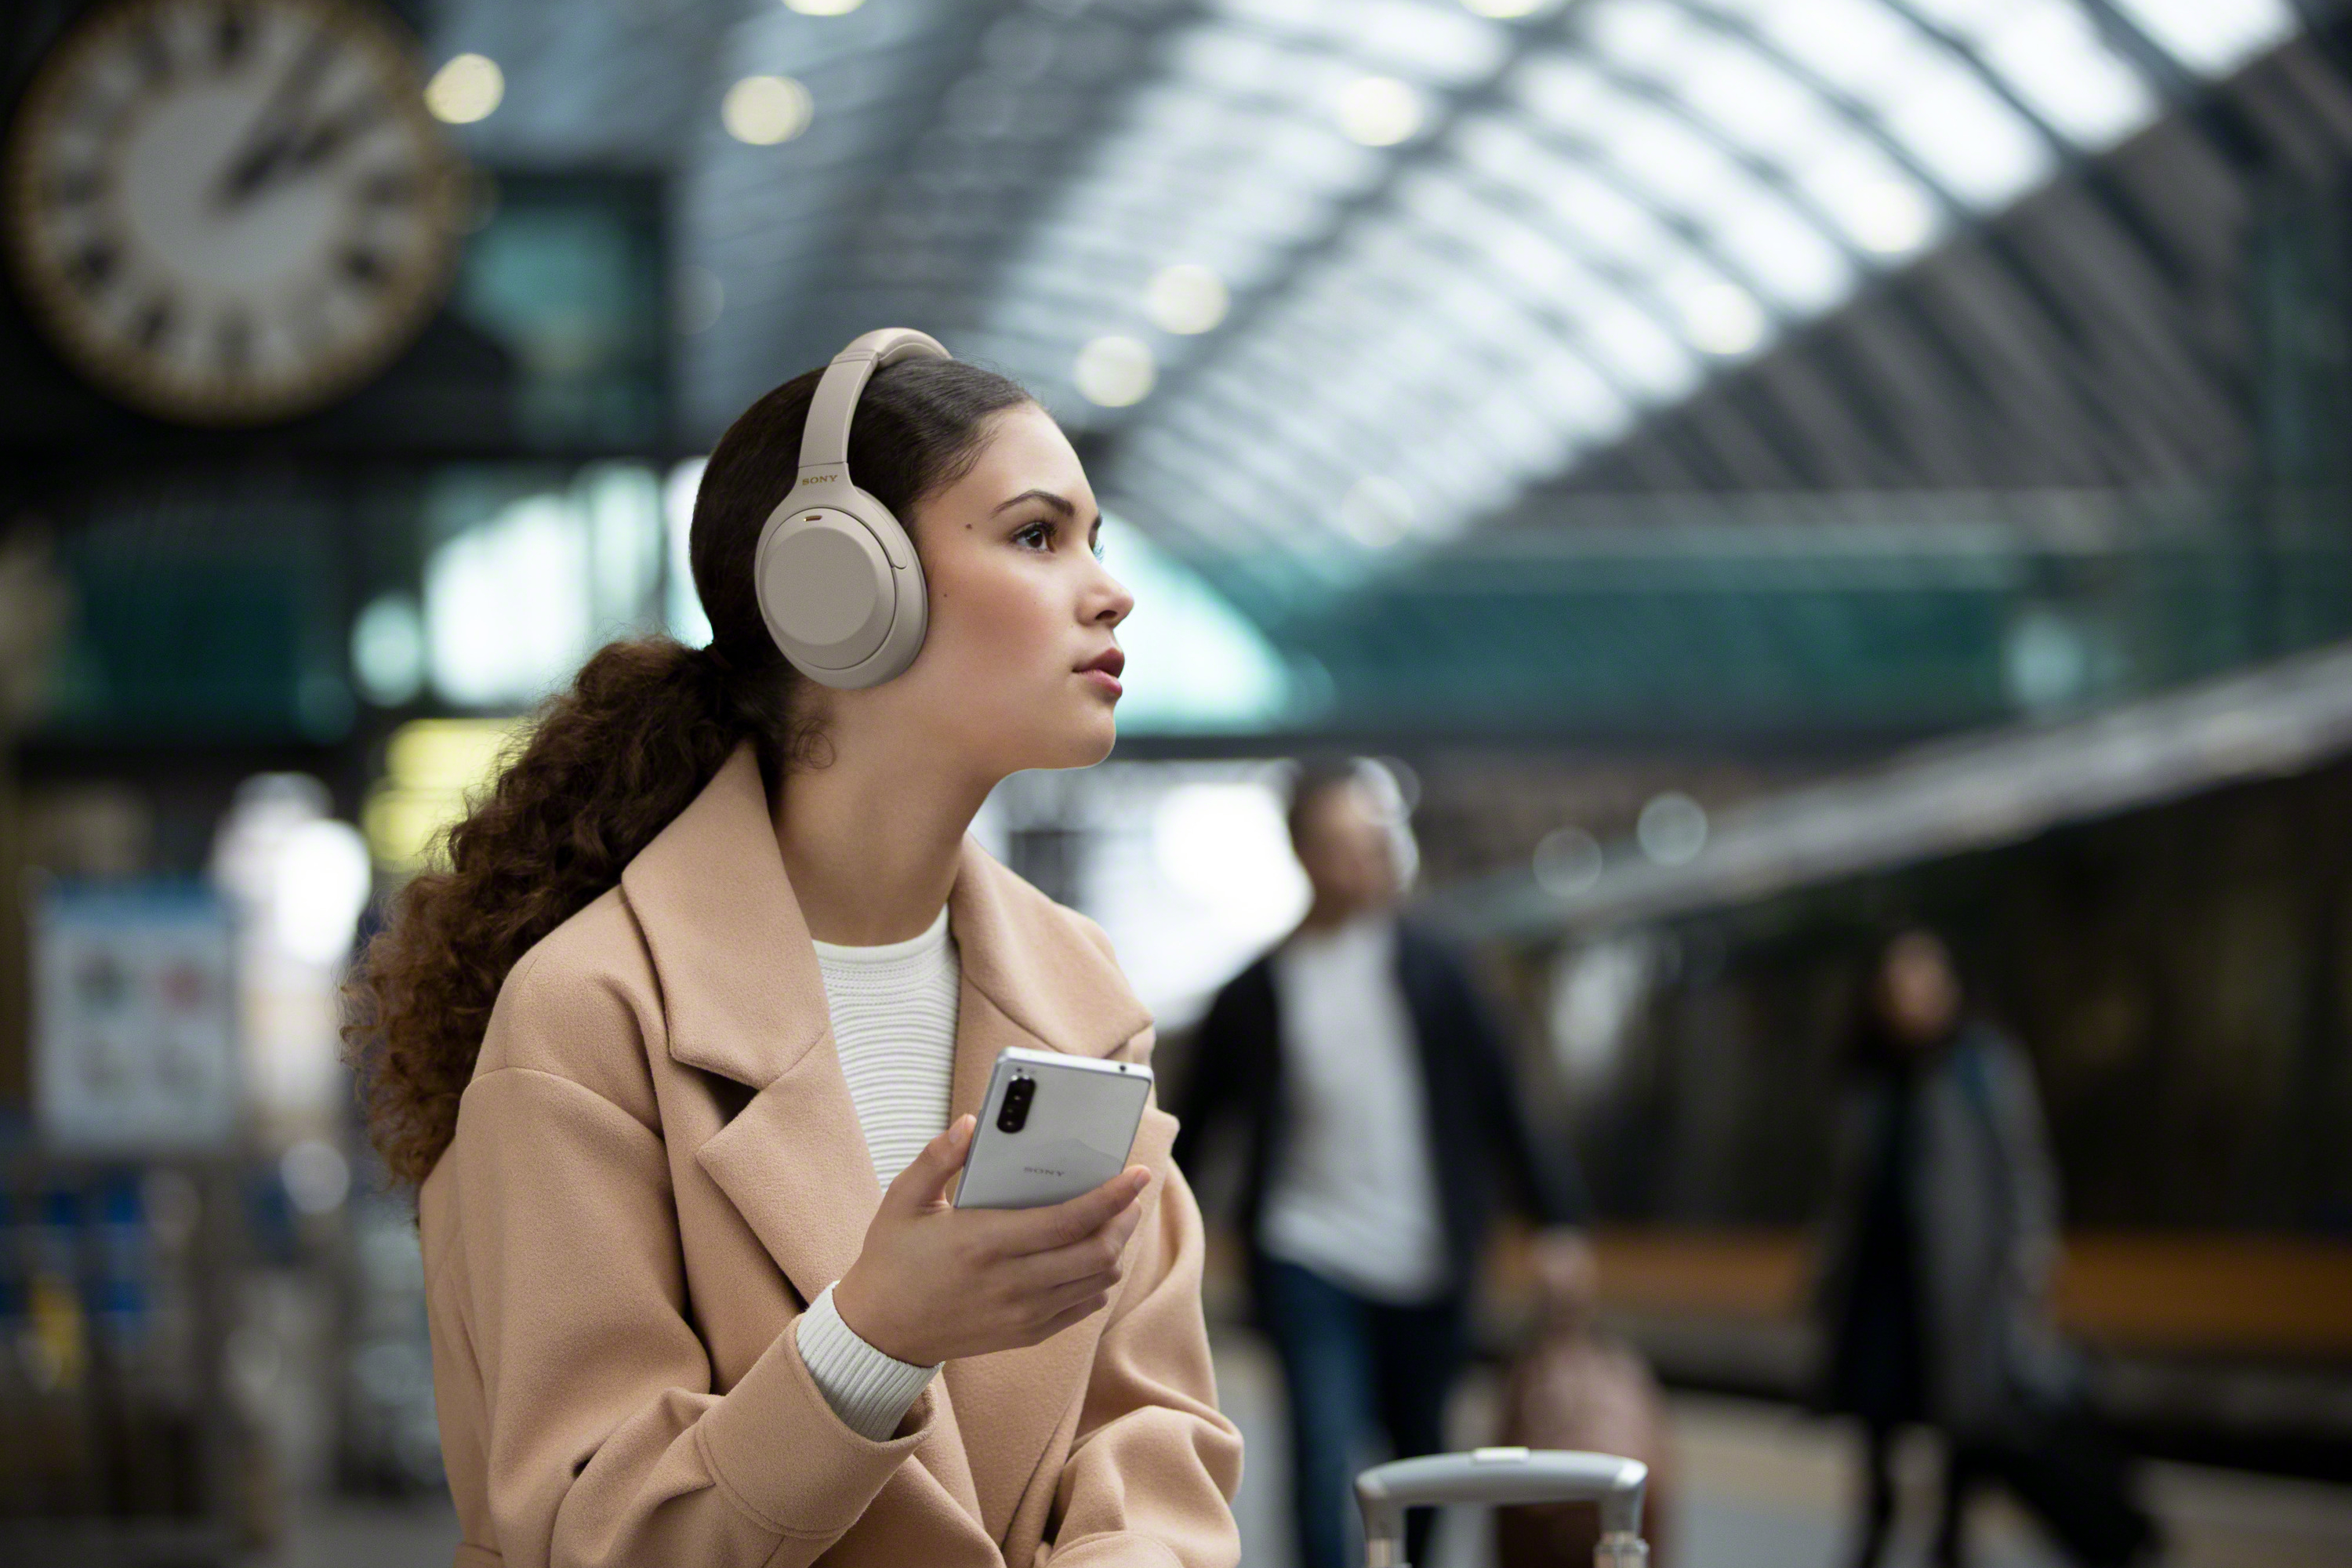 Sony WH-1000XM4 Wireless Noise Cancelling Headphones Launched, Priced at $350